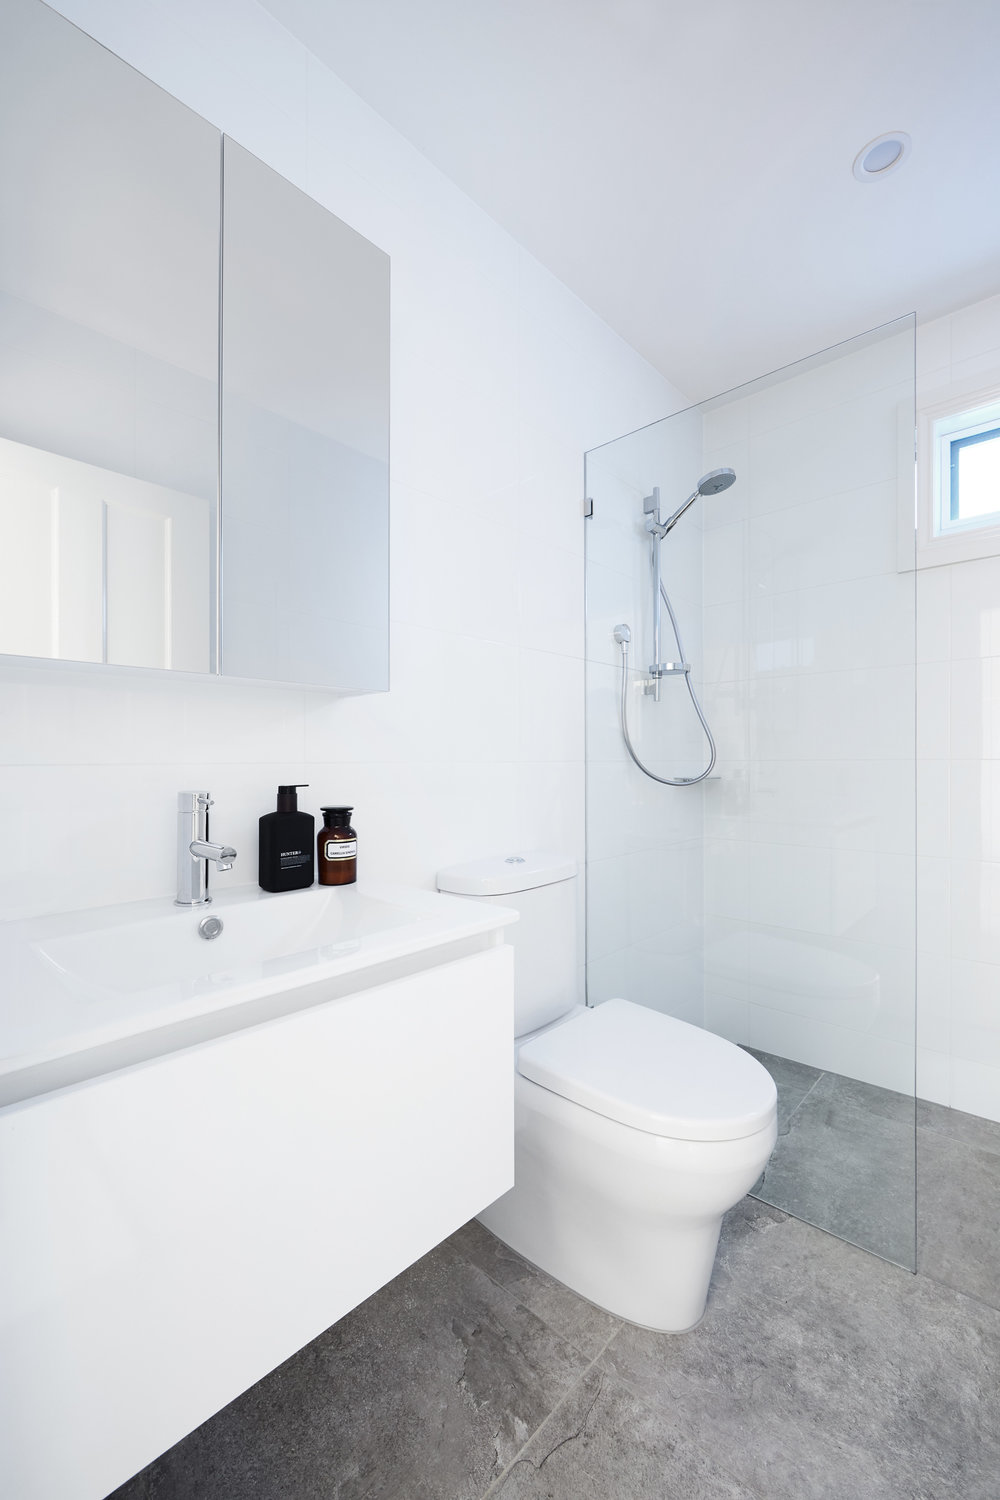 RENOVATED THE EXISTING BATHROOM